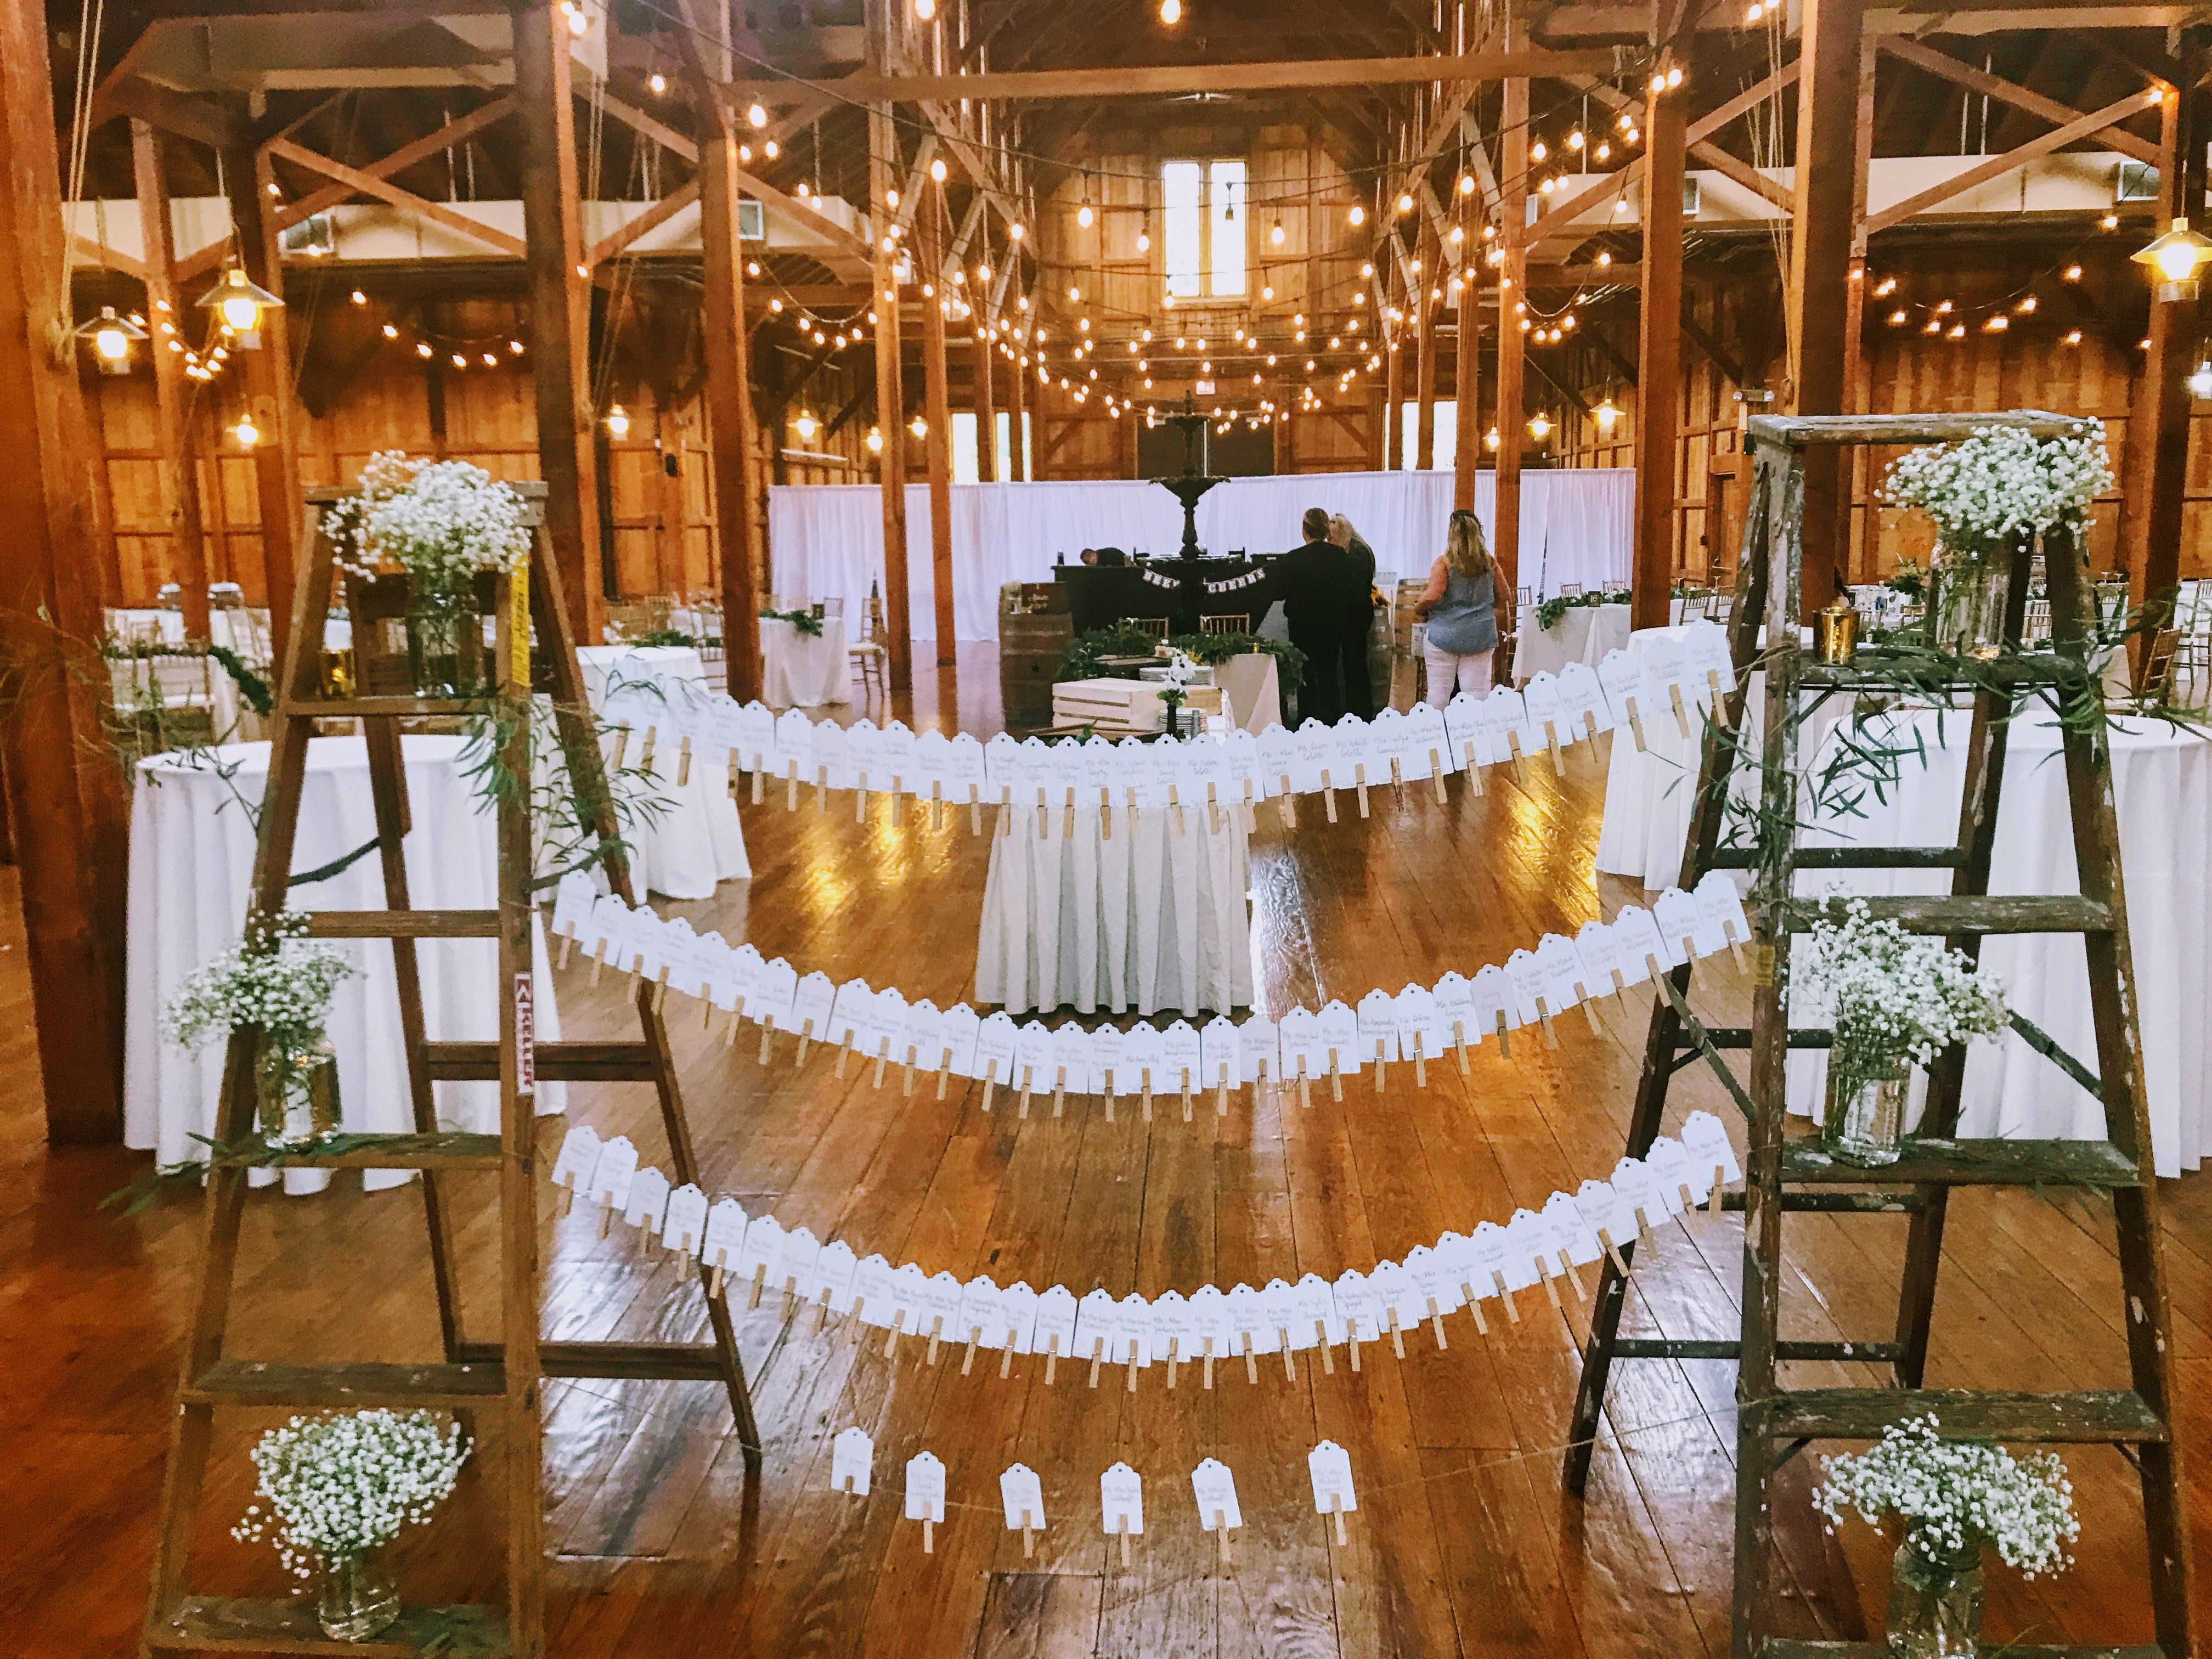 The rustic wedding of your dreams! {The Barn at Old ...